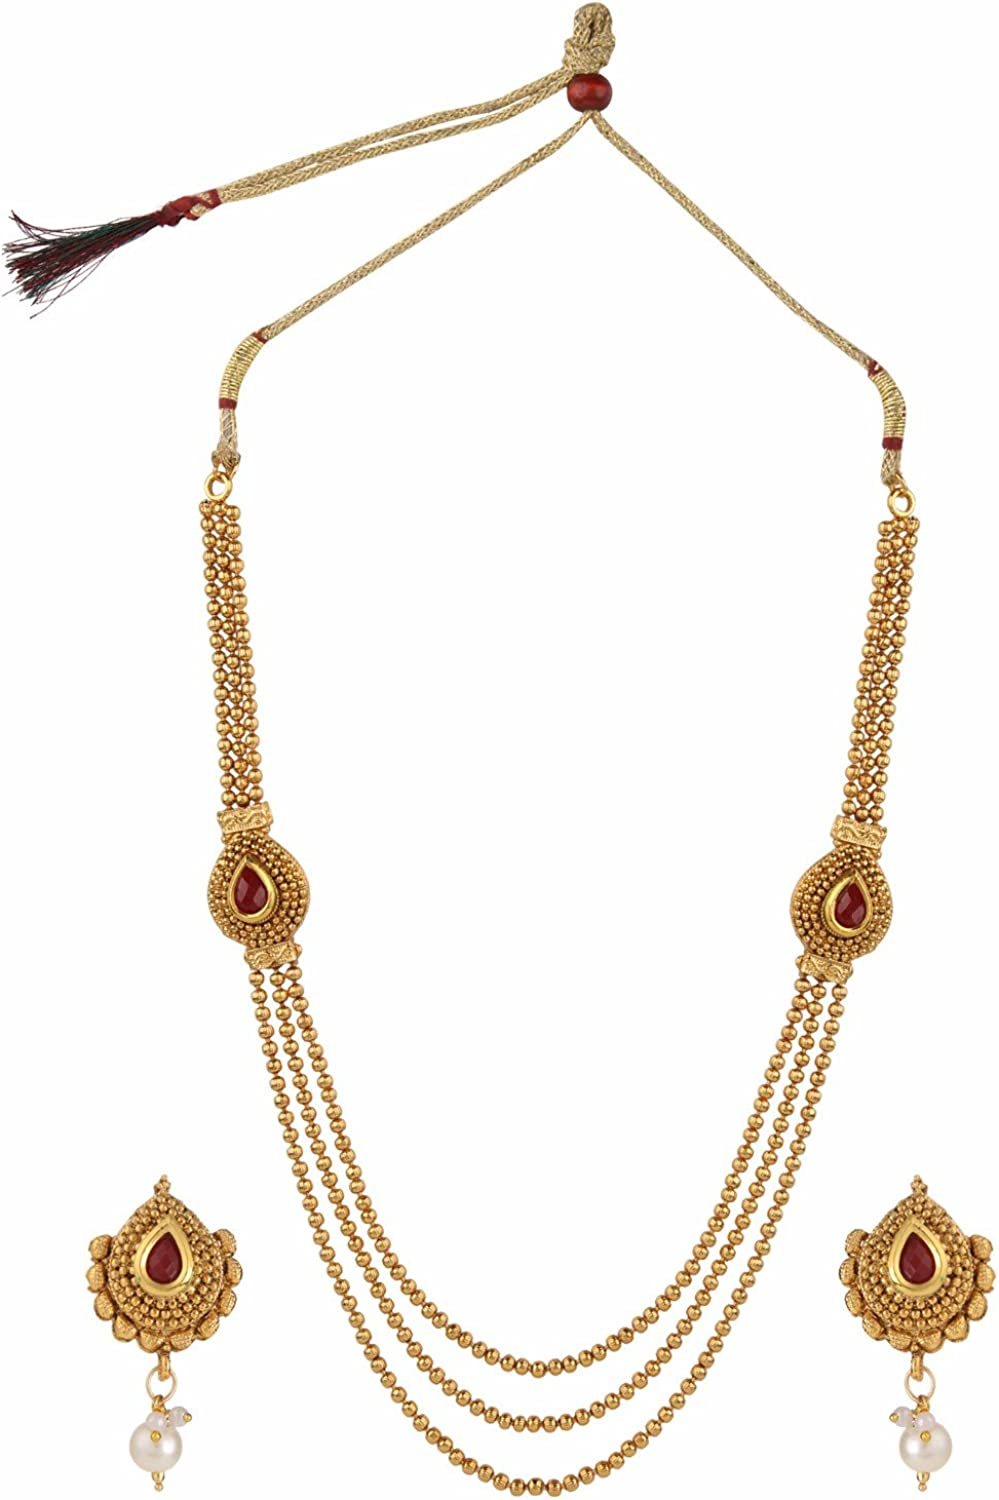 Efulgenz Indian Bollywood Traditional White Red Green Rhinestone Bridal Designer Layered Lariat Style Necklace Set in Antique 18K Gold Tone for Women and Girls